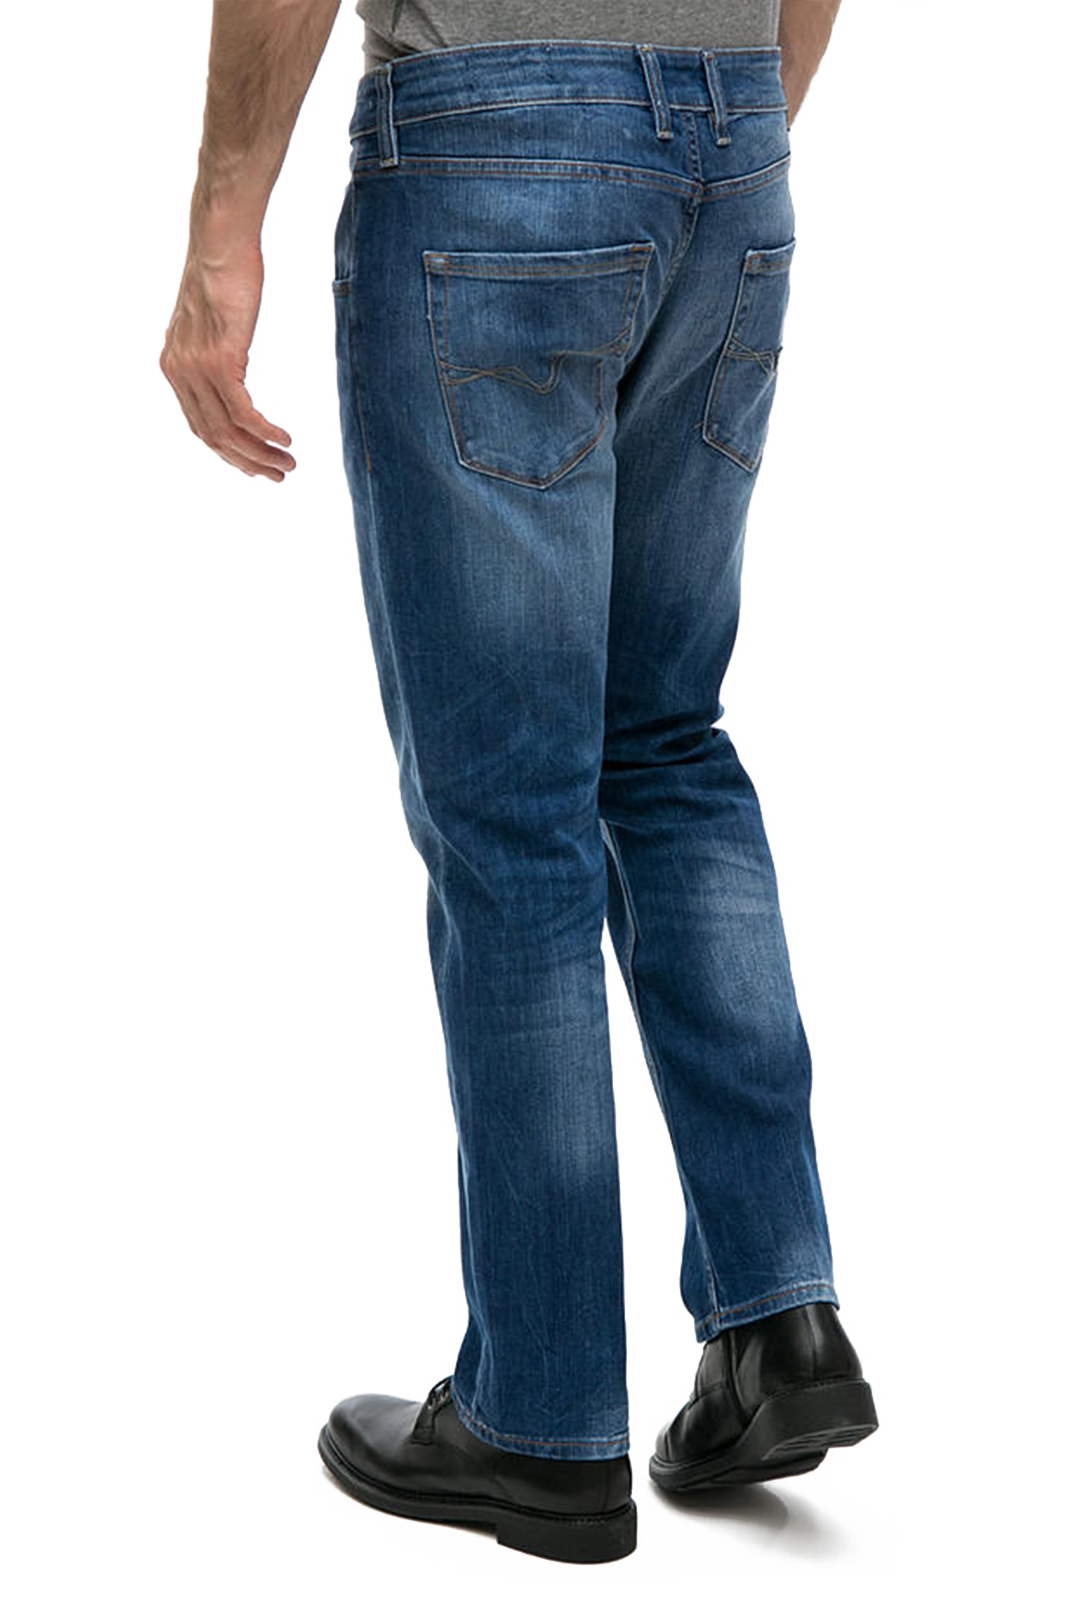 GUESS JEANS SLIM STRETCH  M74AS3 BLEU